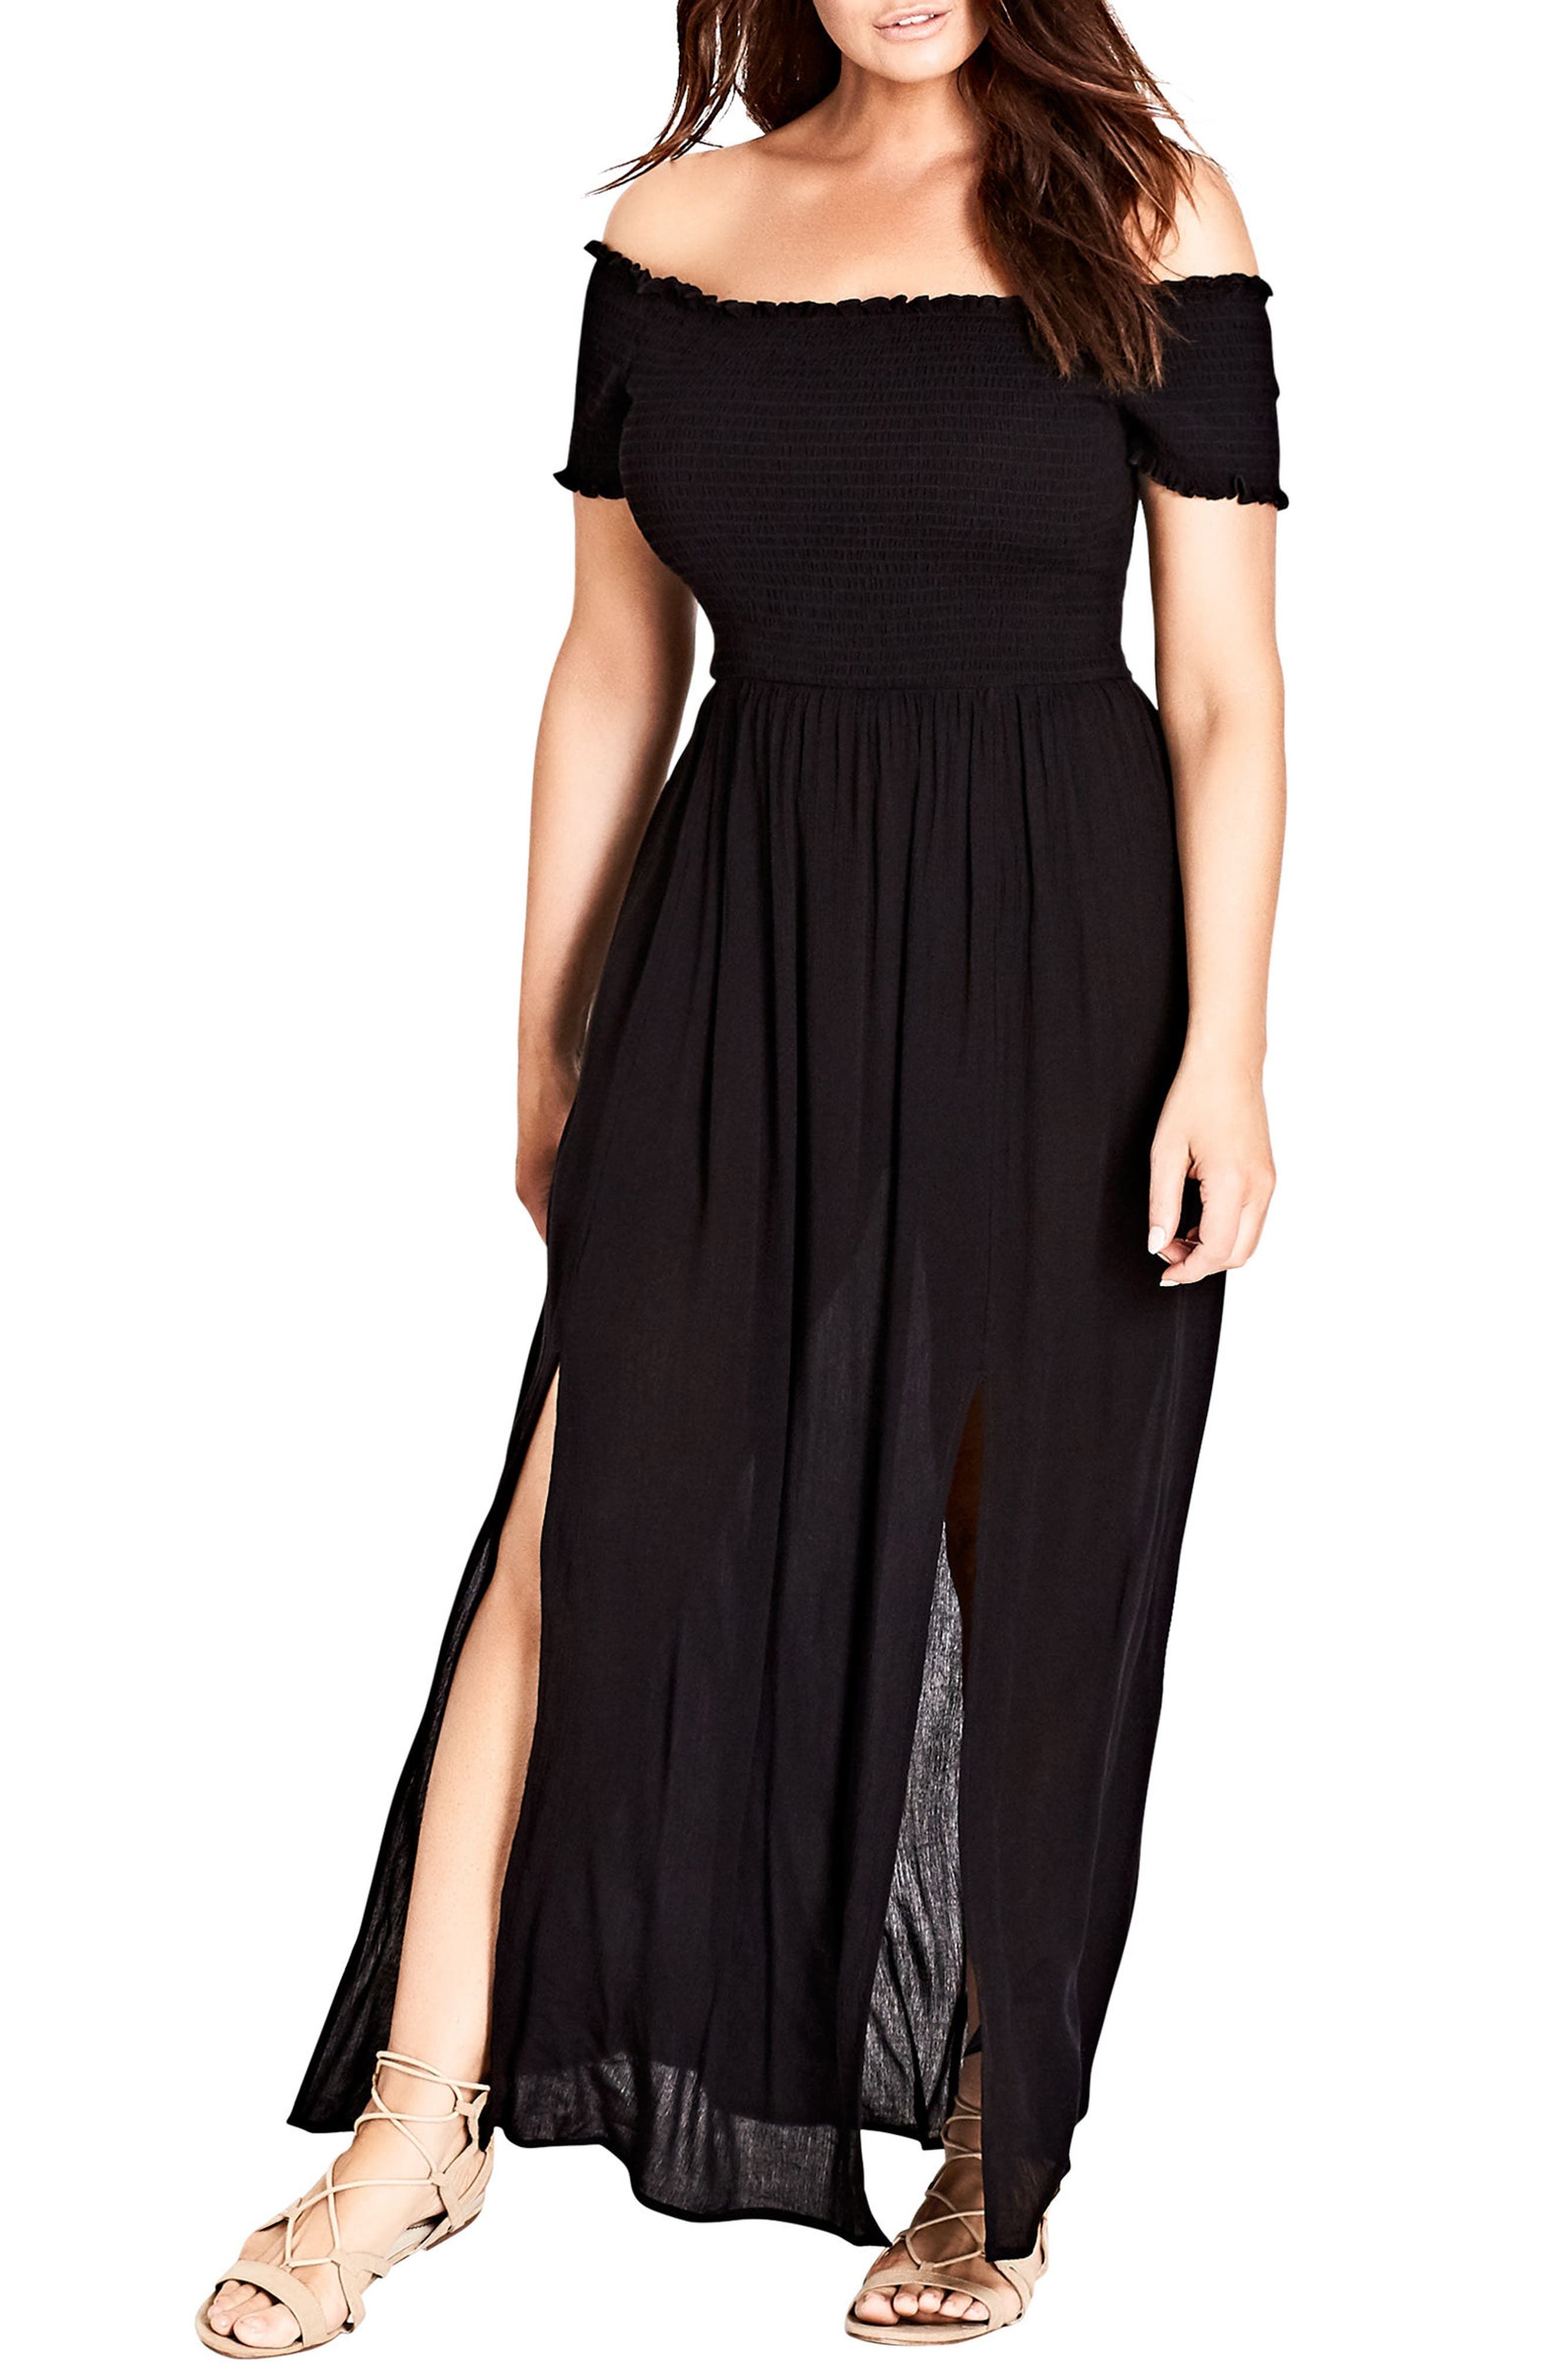 Smocked Off the Shoulder Maxi Dress,                             Main thumbnail 1, color,                             Black